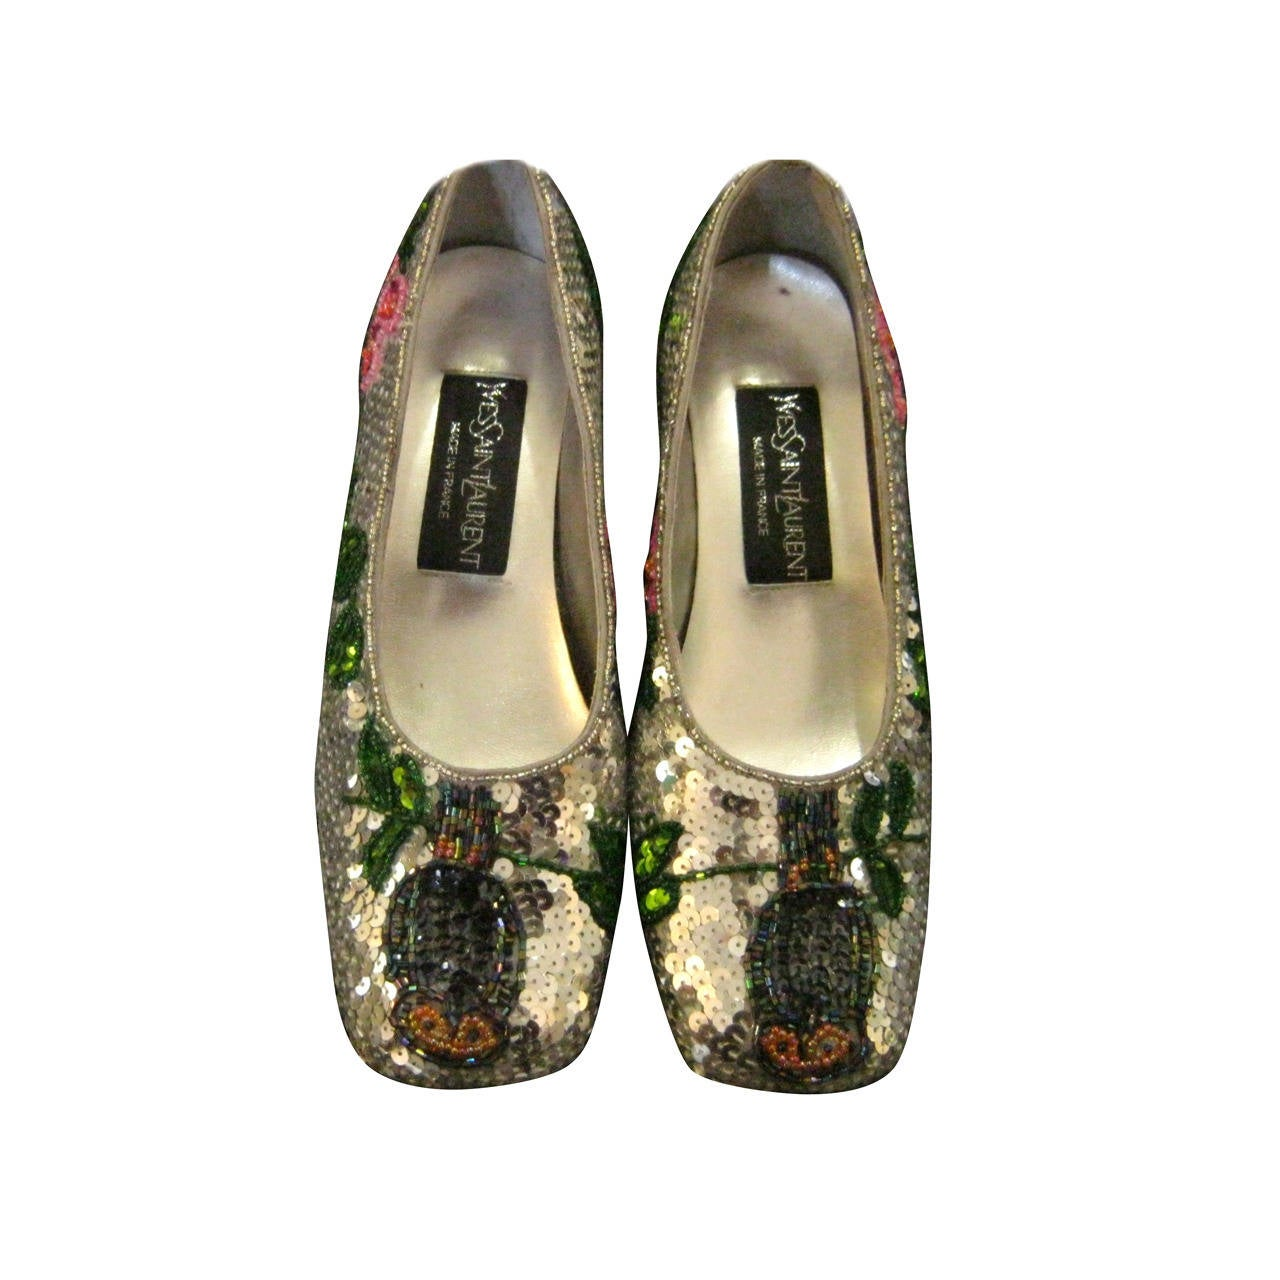 Vintage Yves Saint Laurent Sequin and Beaded Shoes 37 1